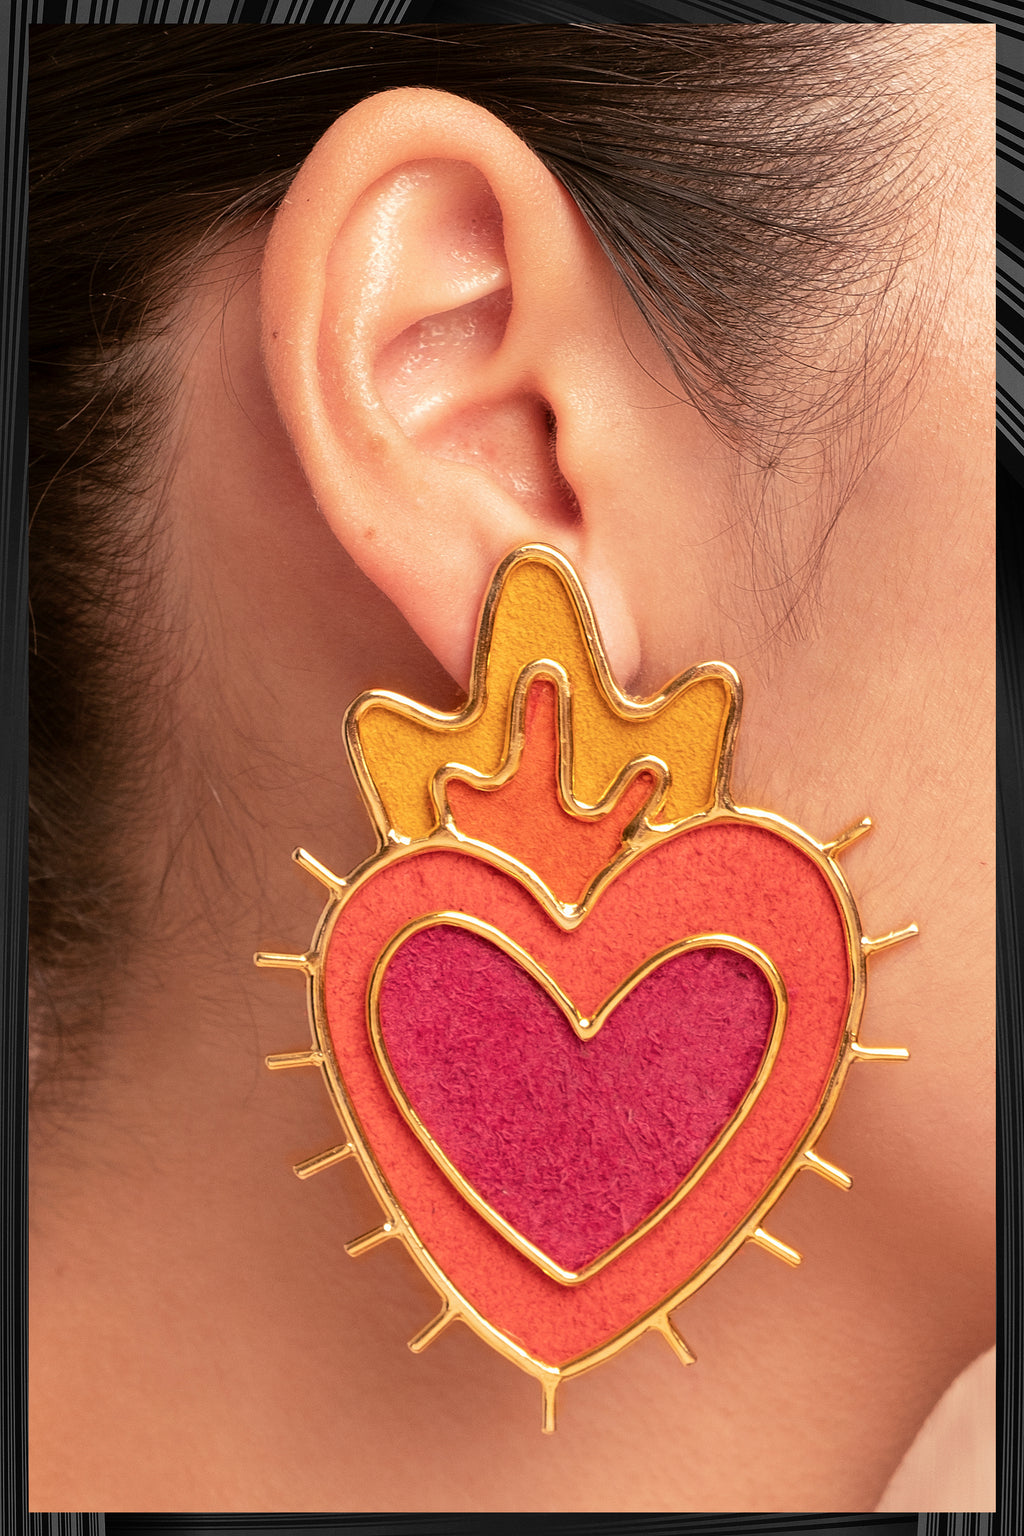 Sagrado Corazon Earrings  | Free Delivery - 3 Week Shipping